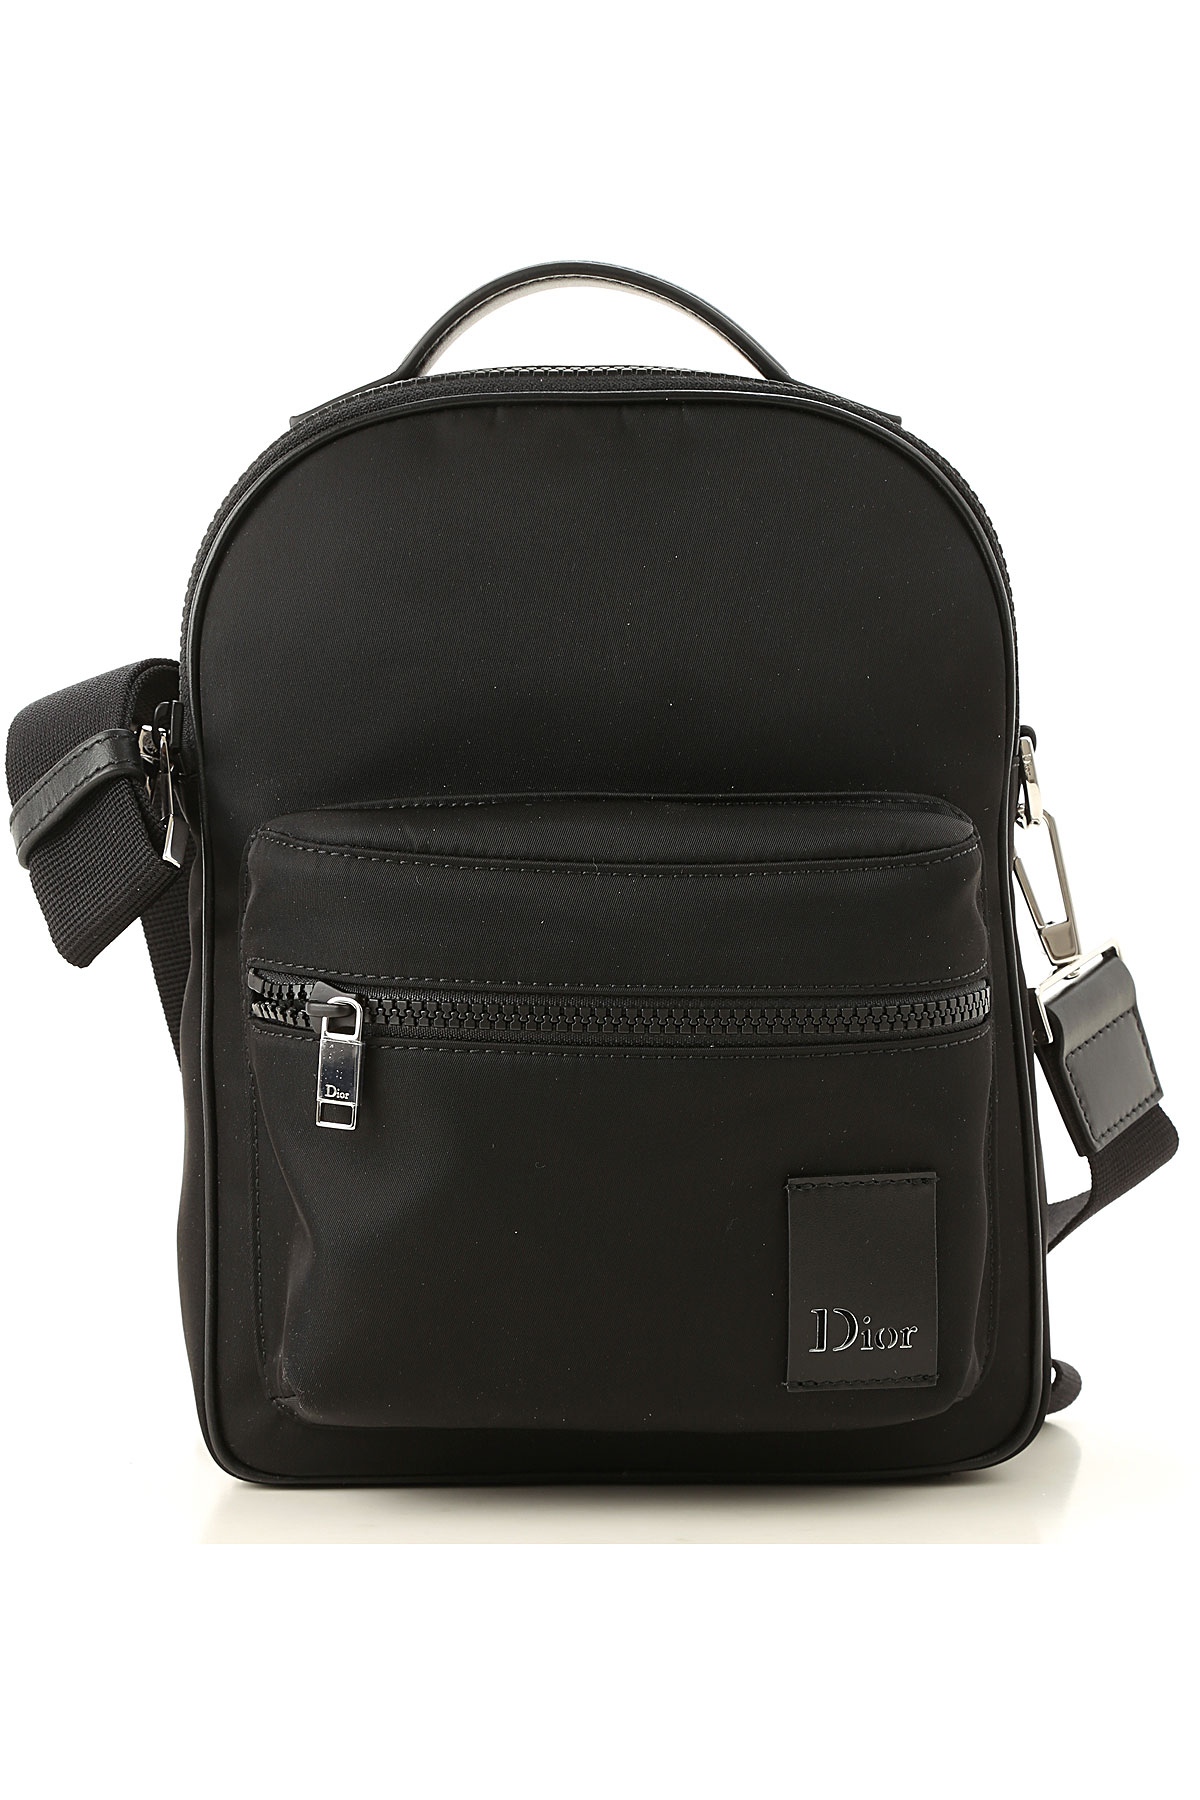 Image of Christian Dior Backpack for Men, Black, Fabric, 2017, one size